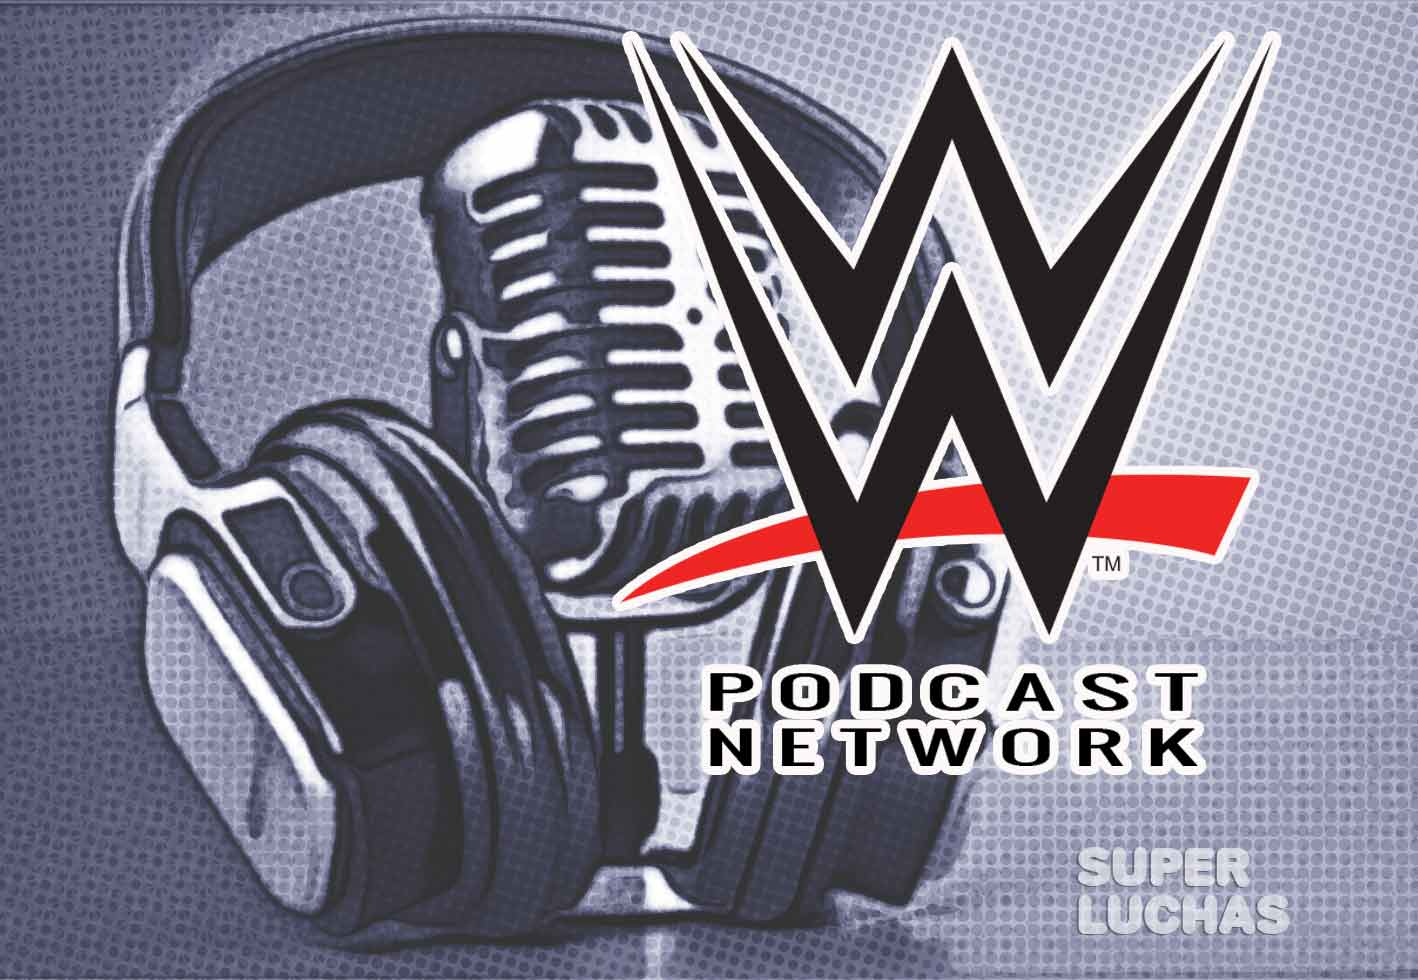 WWE Podcast Network